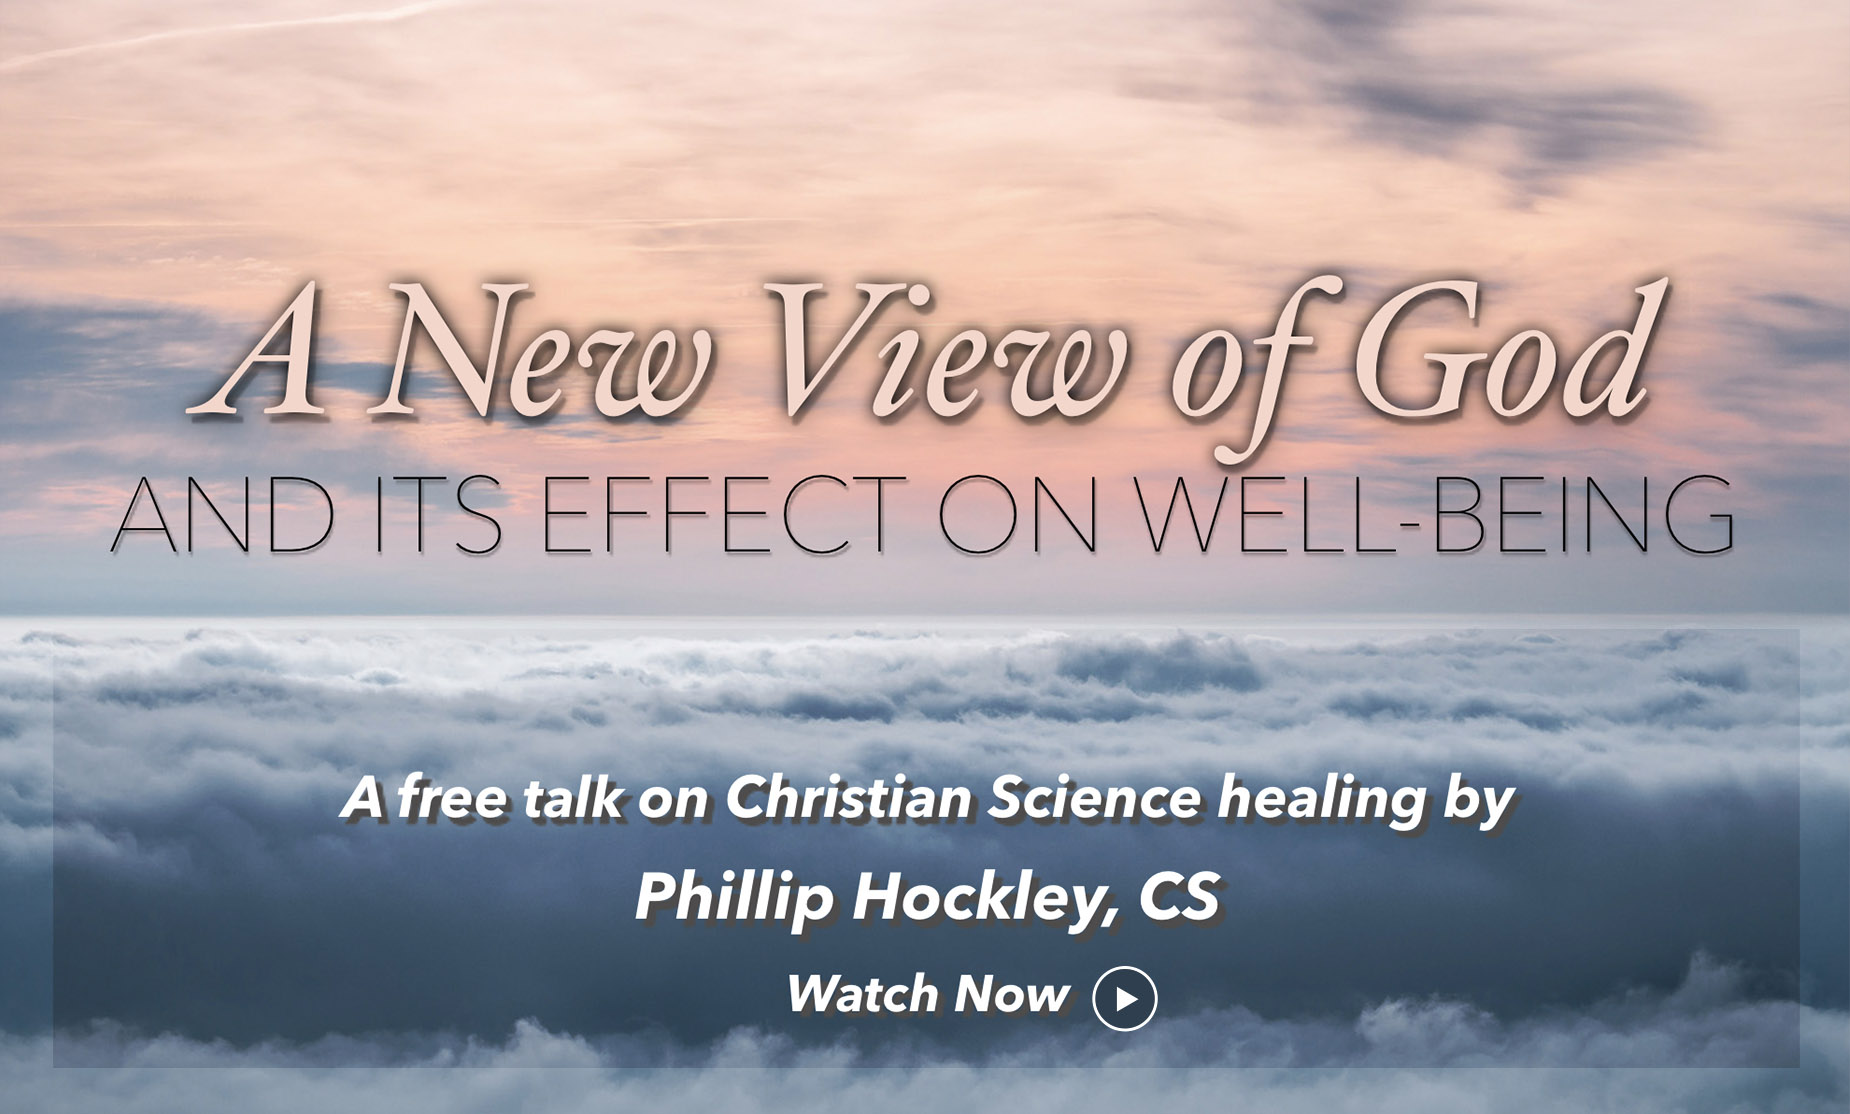 A New View of God and Its Effect on Well-Being